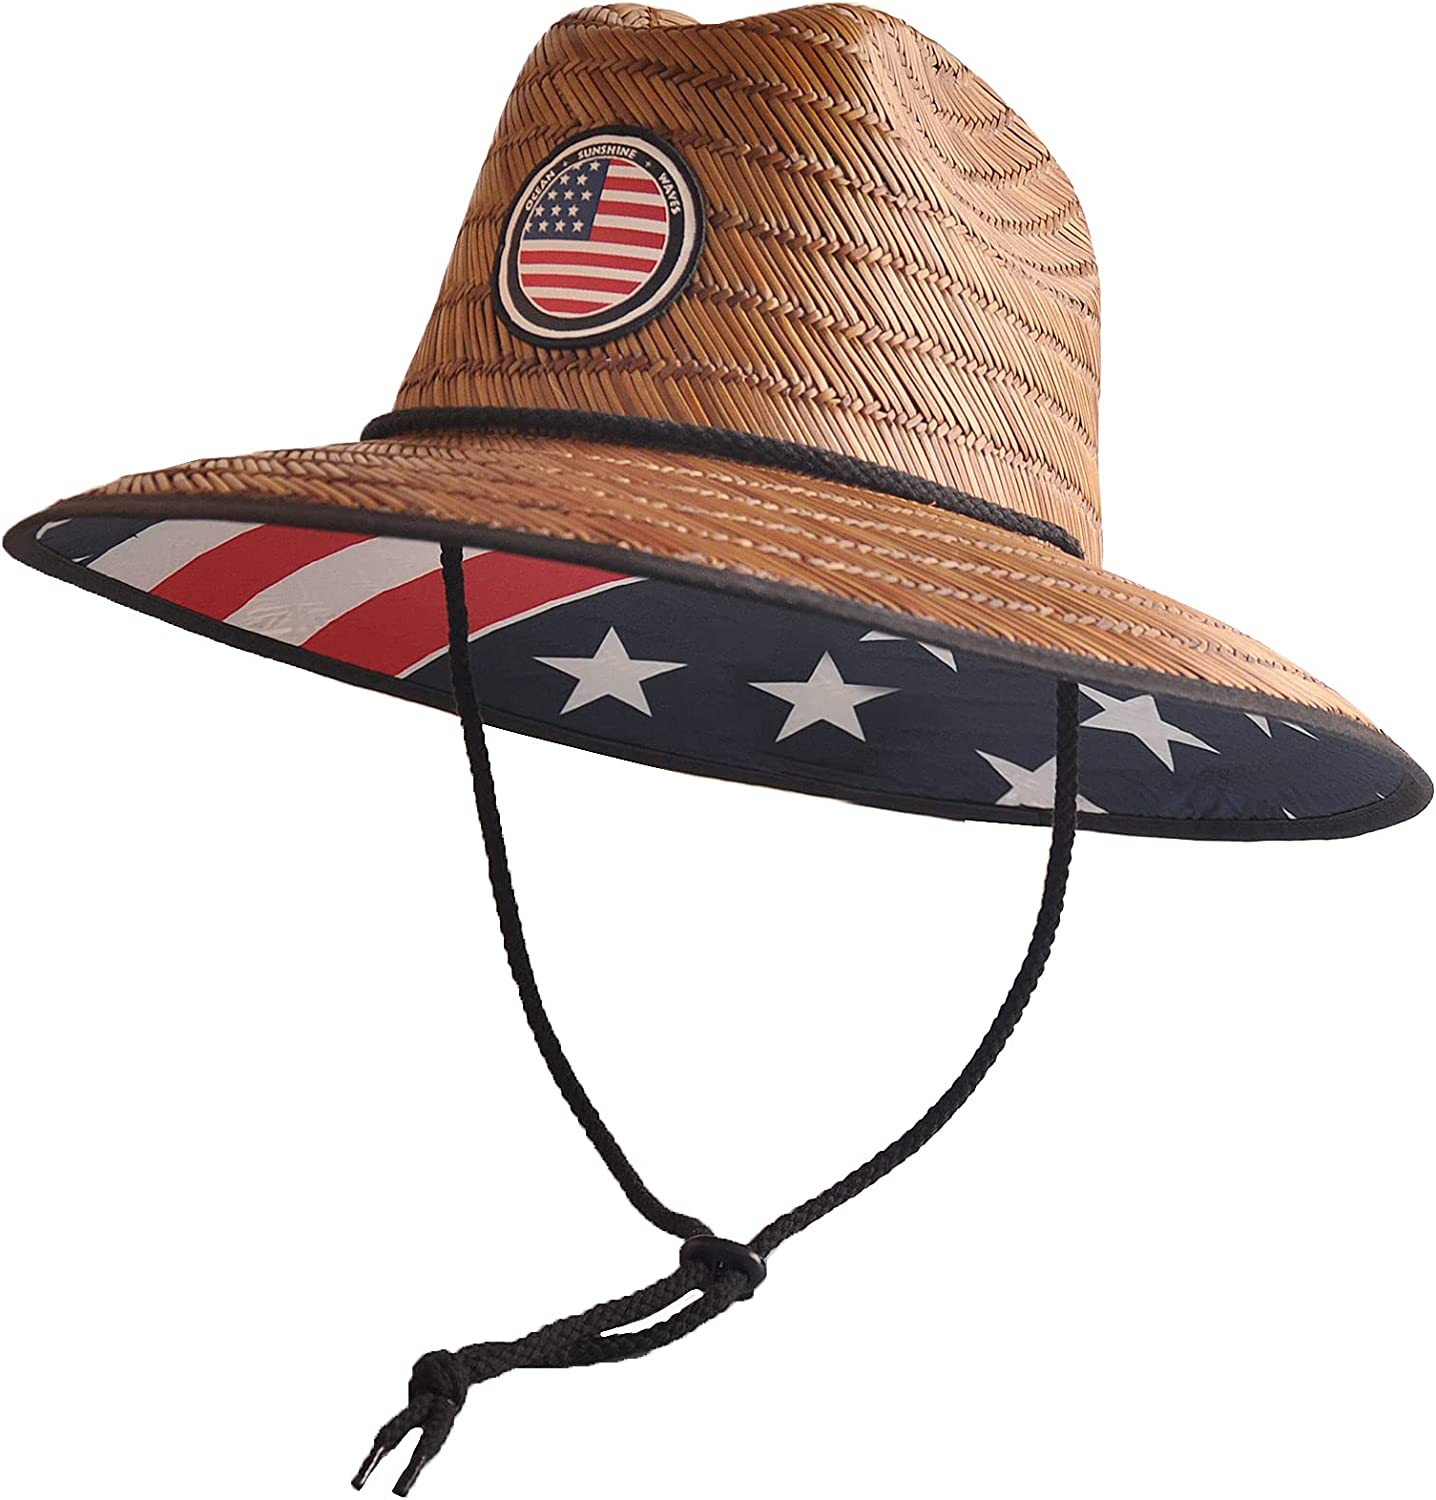 Men's Classic Straw Hat Protection Sun Super popular specialty cheap store Lifeguard Outsider